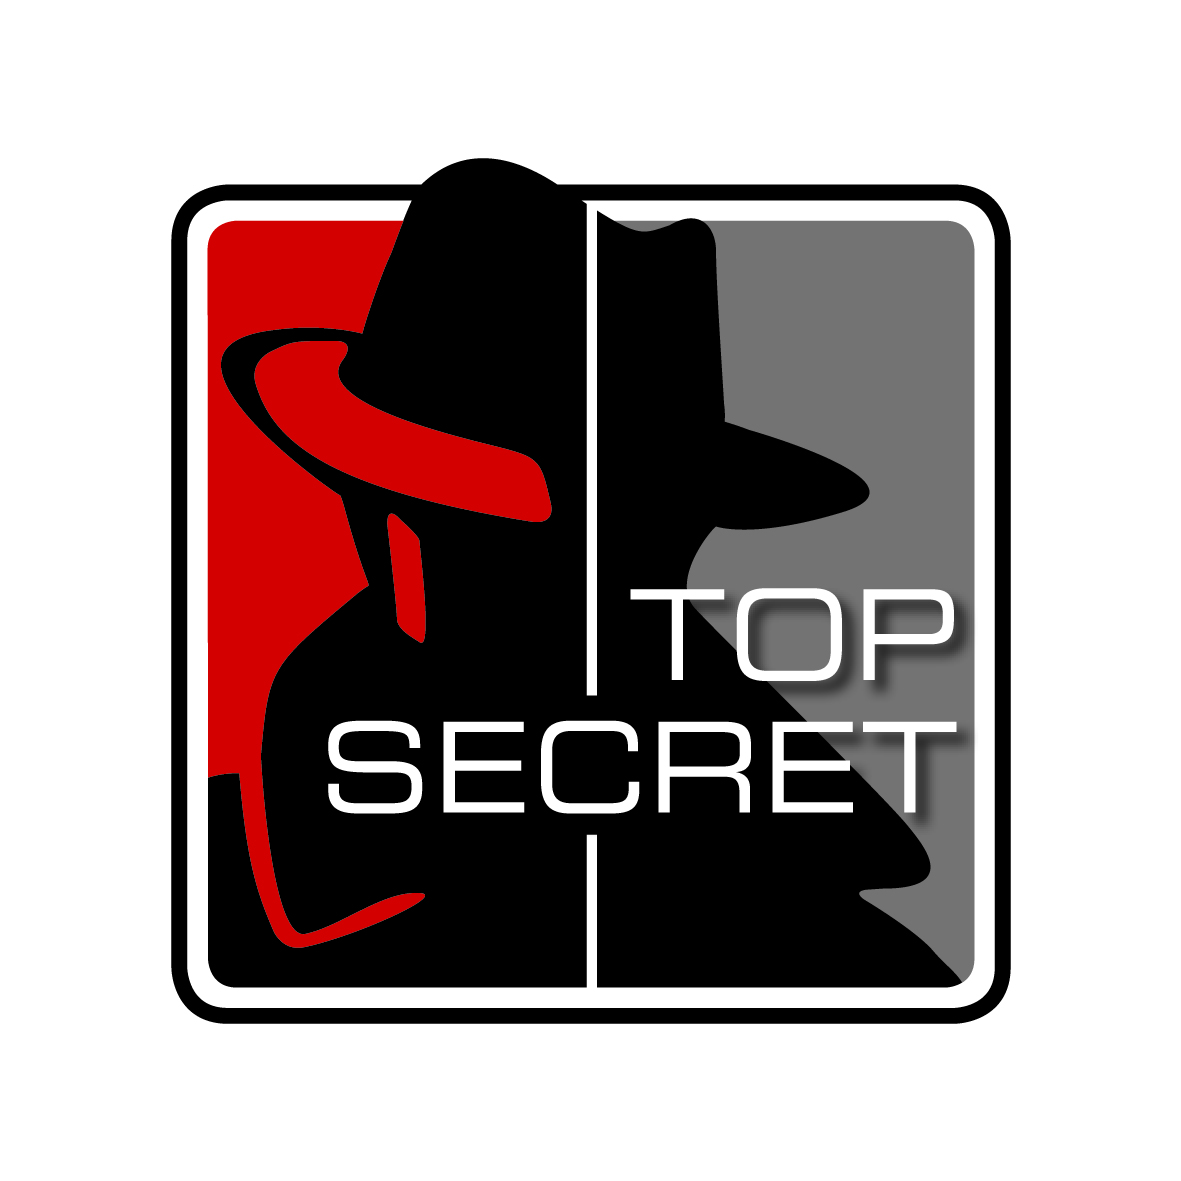 Top secret pictures